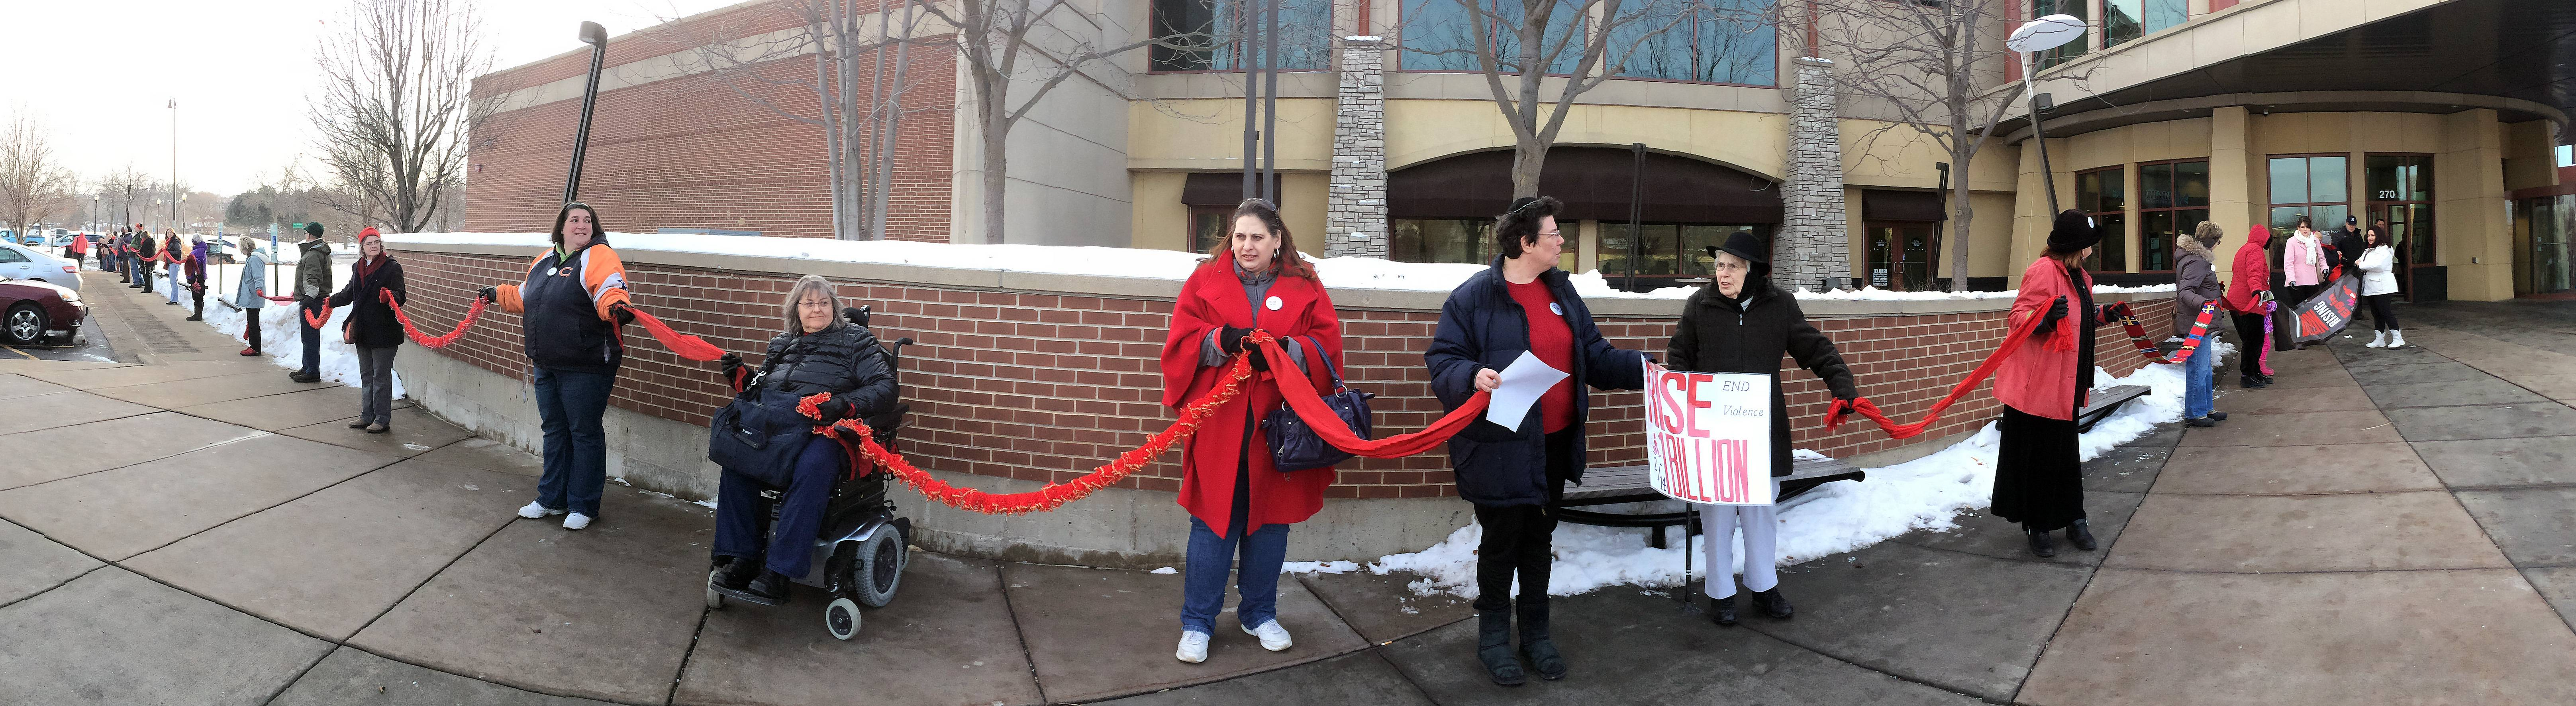 "About 110 people came together Friday at the Gail Borden Public Library in Elgin and formed a line while holding red scarves as part of the ""One Billion Rising"" global campaign to end violence against women and girls."